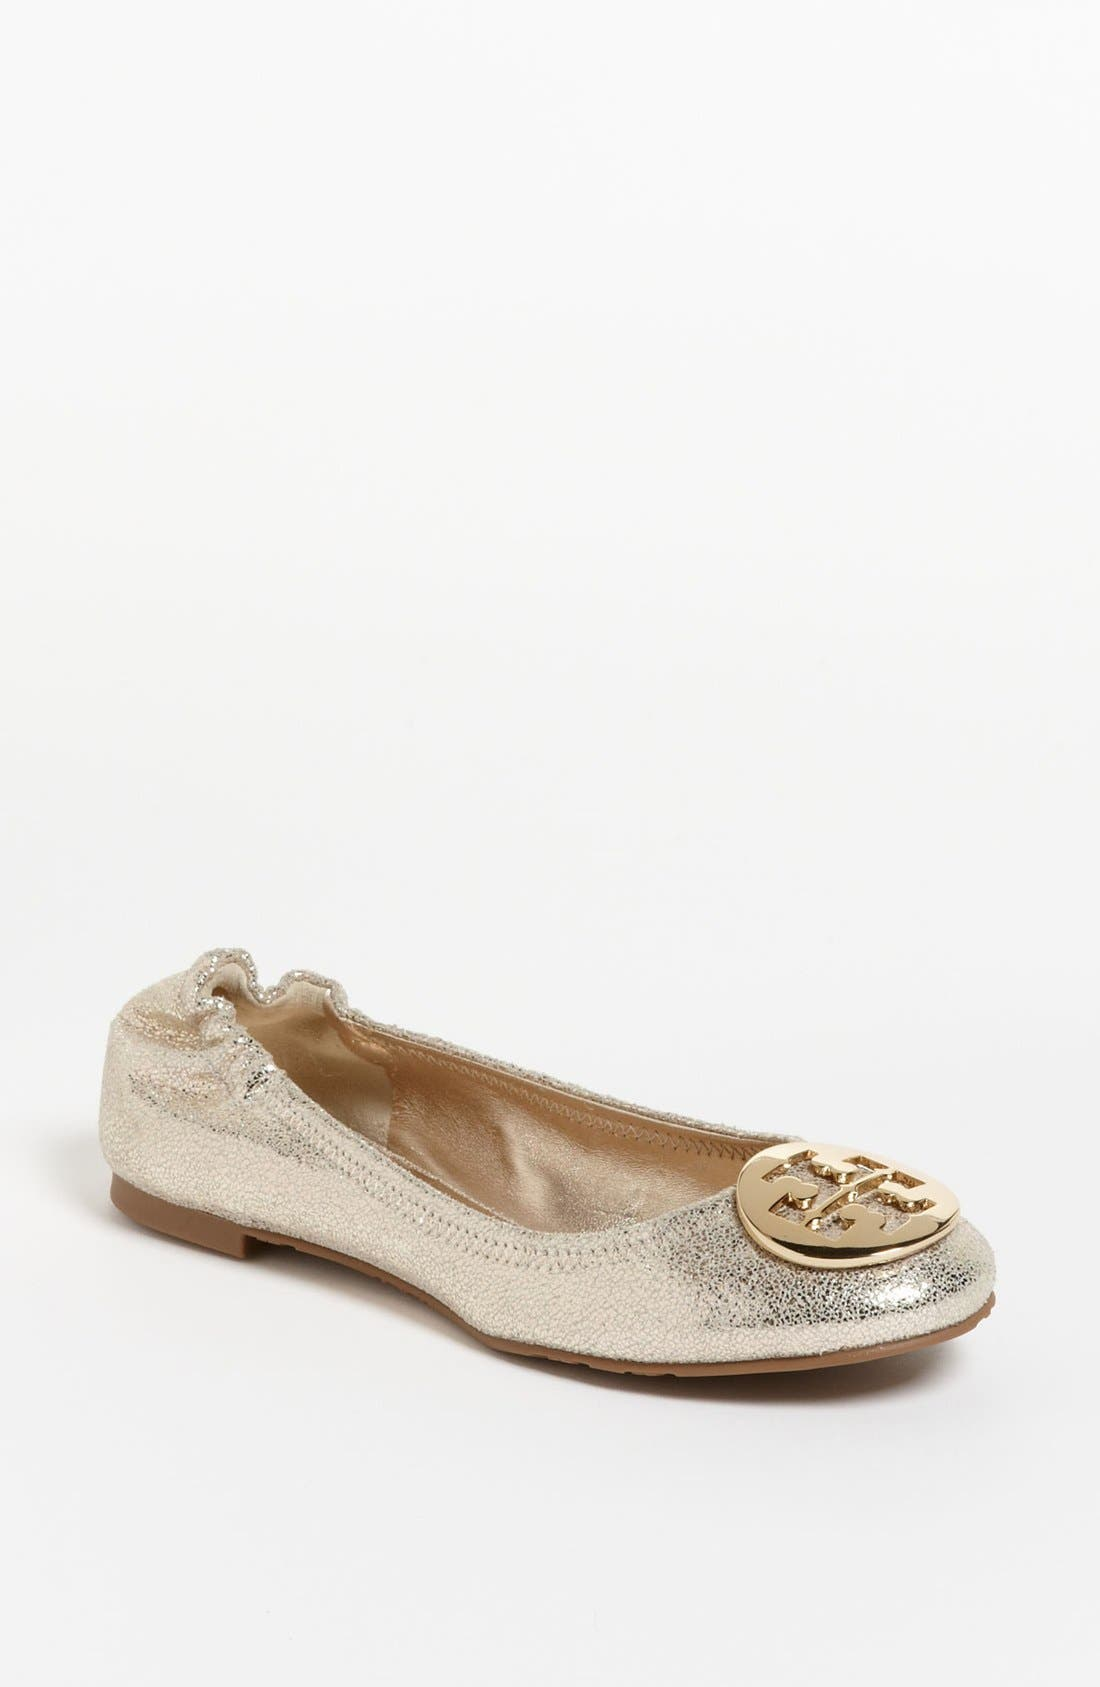 Alternate Image 1 Selected - Tory Burch 'Reva' Flat